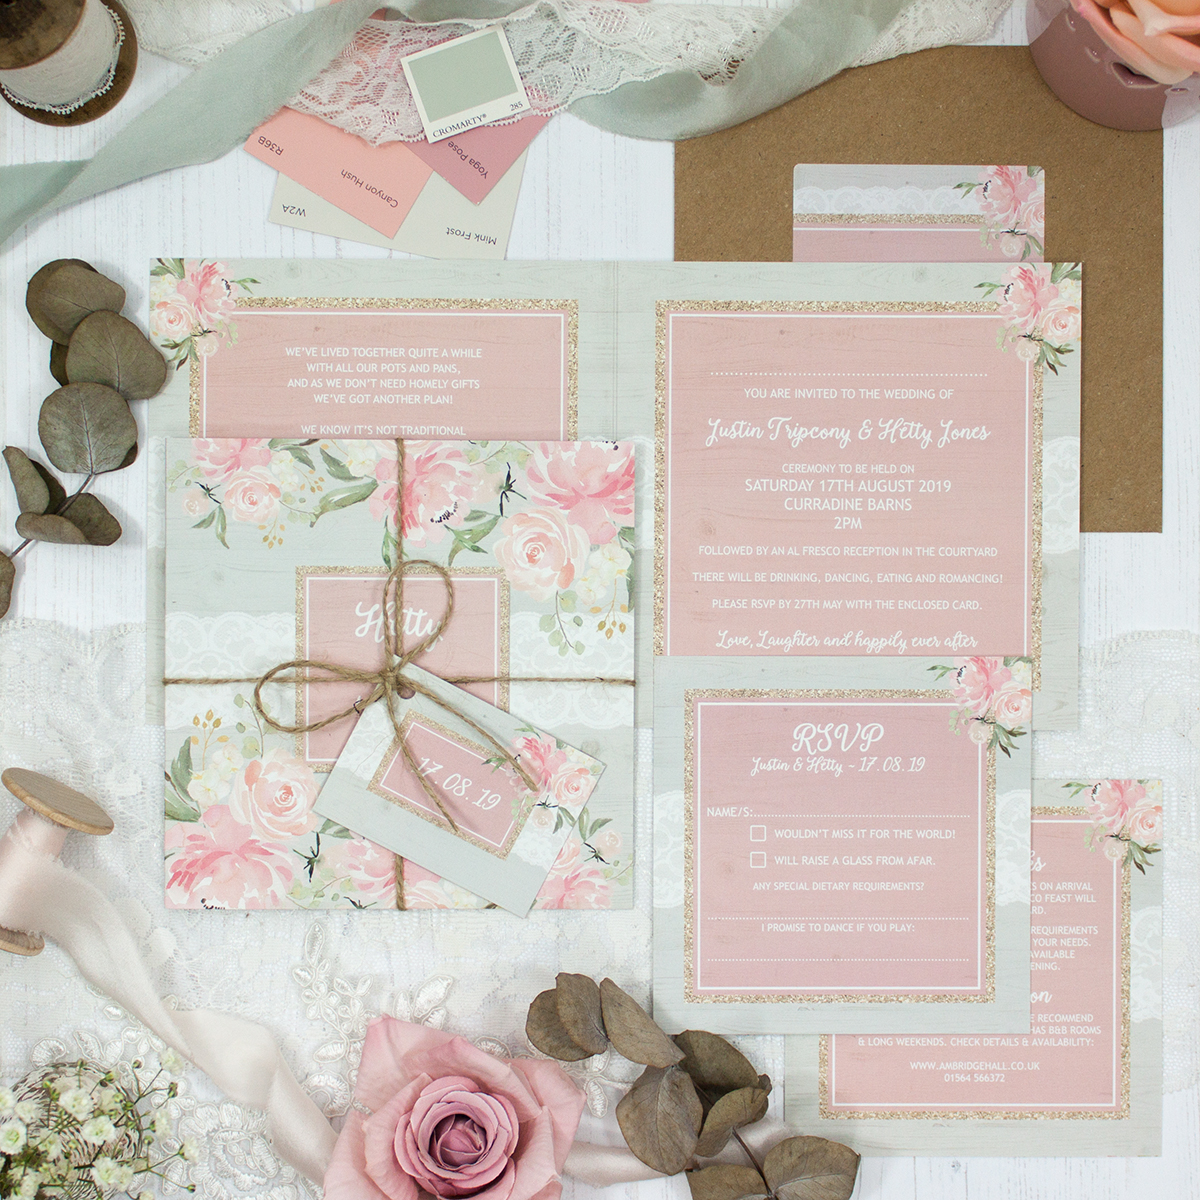 Enchanted Garden Wedding showing invitation